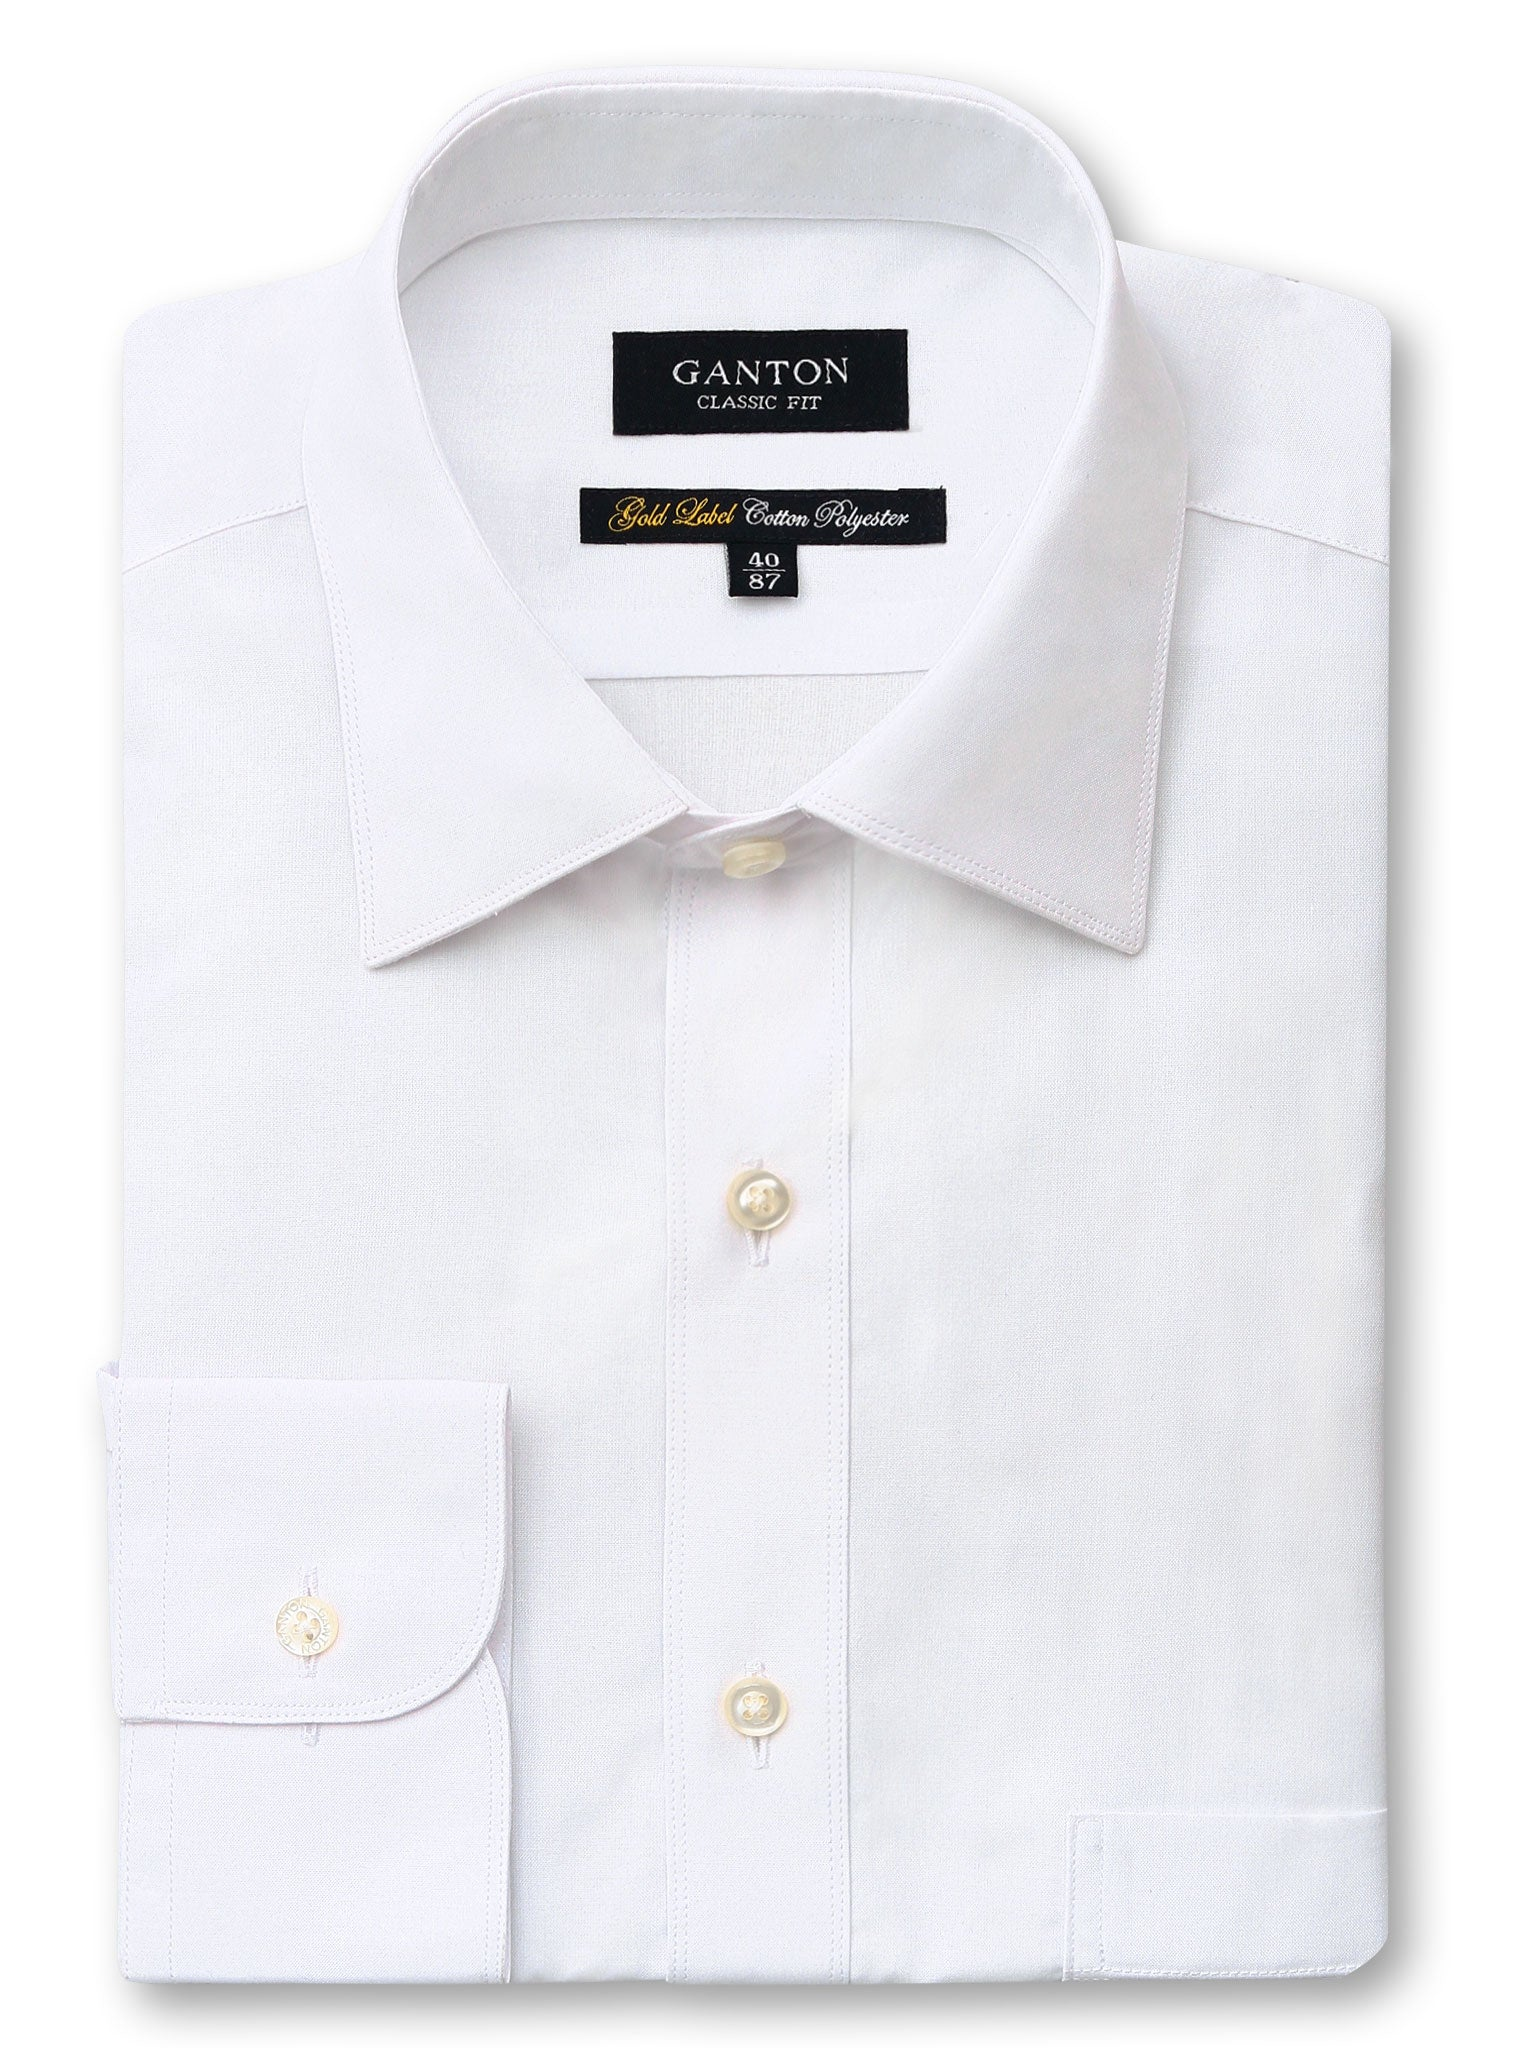 All White Gold Label Classic Fit Cotton Polyester Shirt